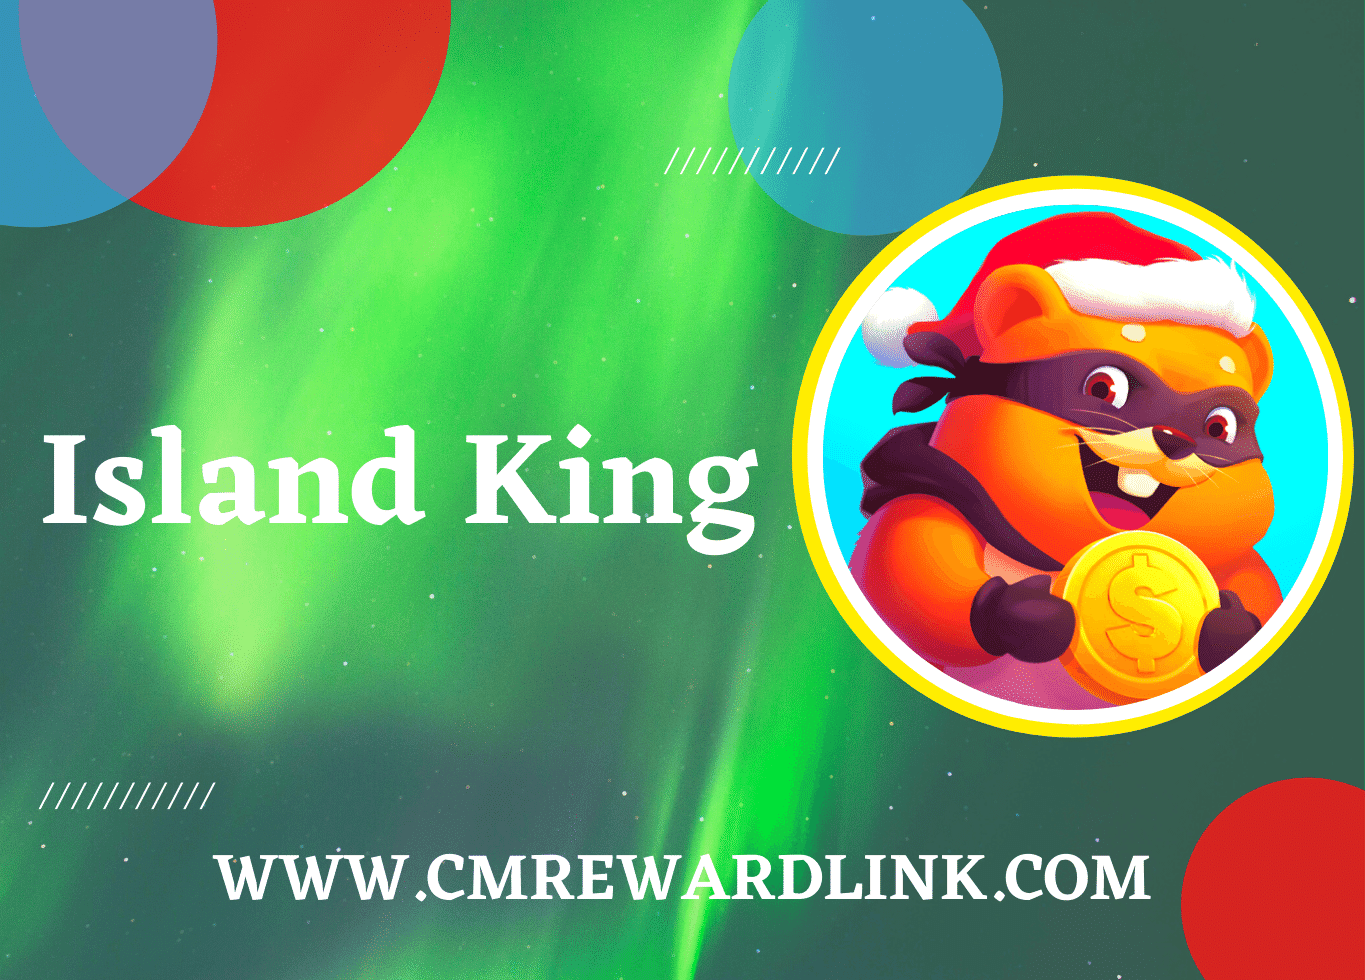 island king free spins 2021